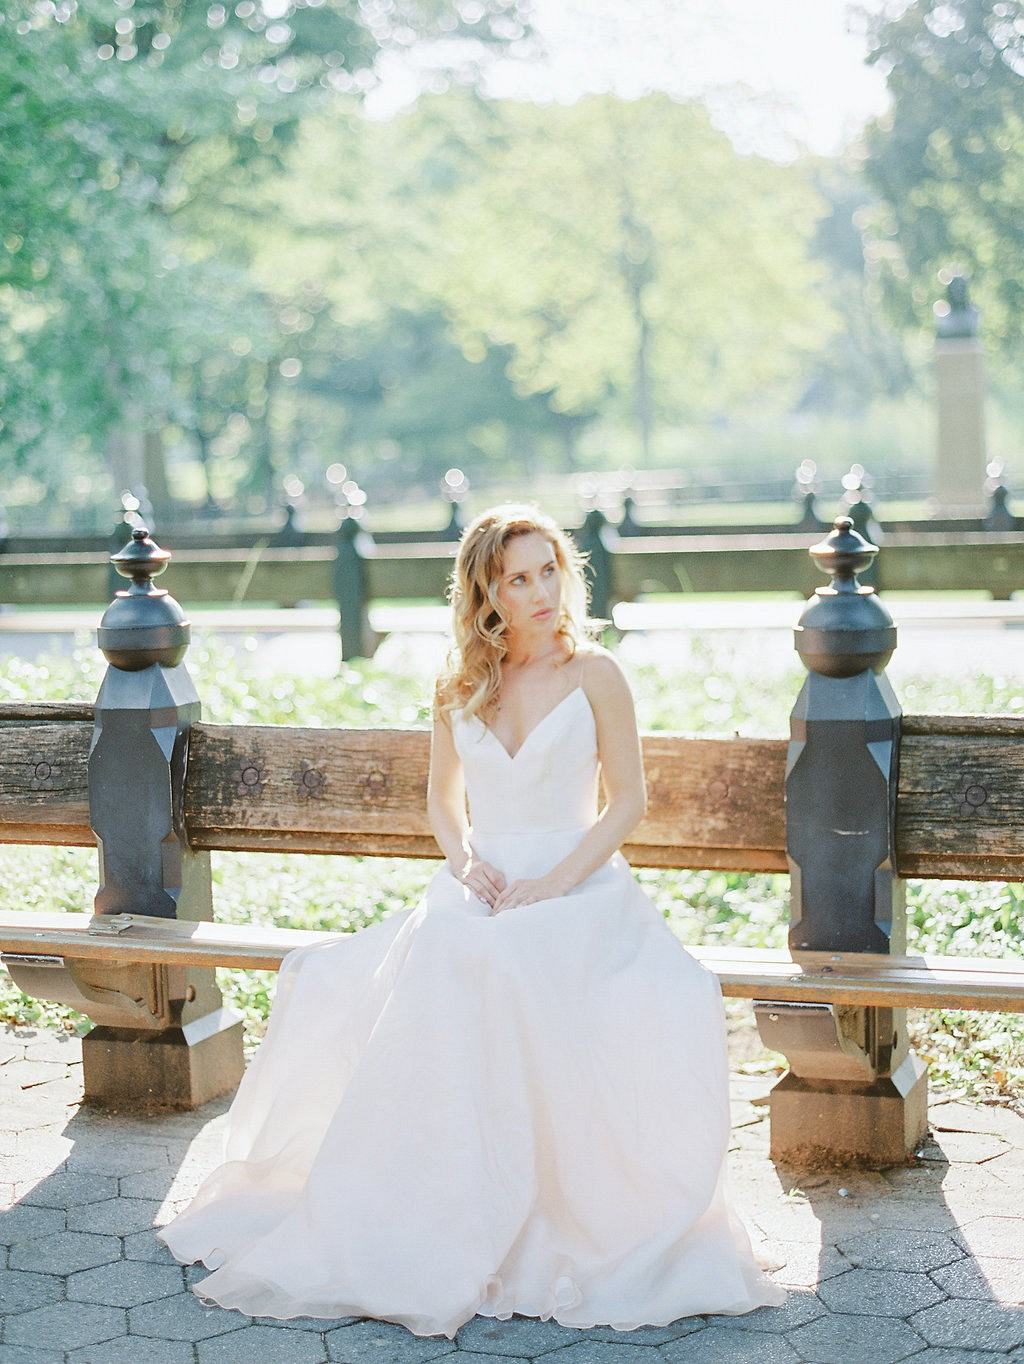 Central Park Elopement in a Pale Blue Wedding Gown